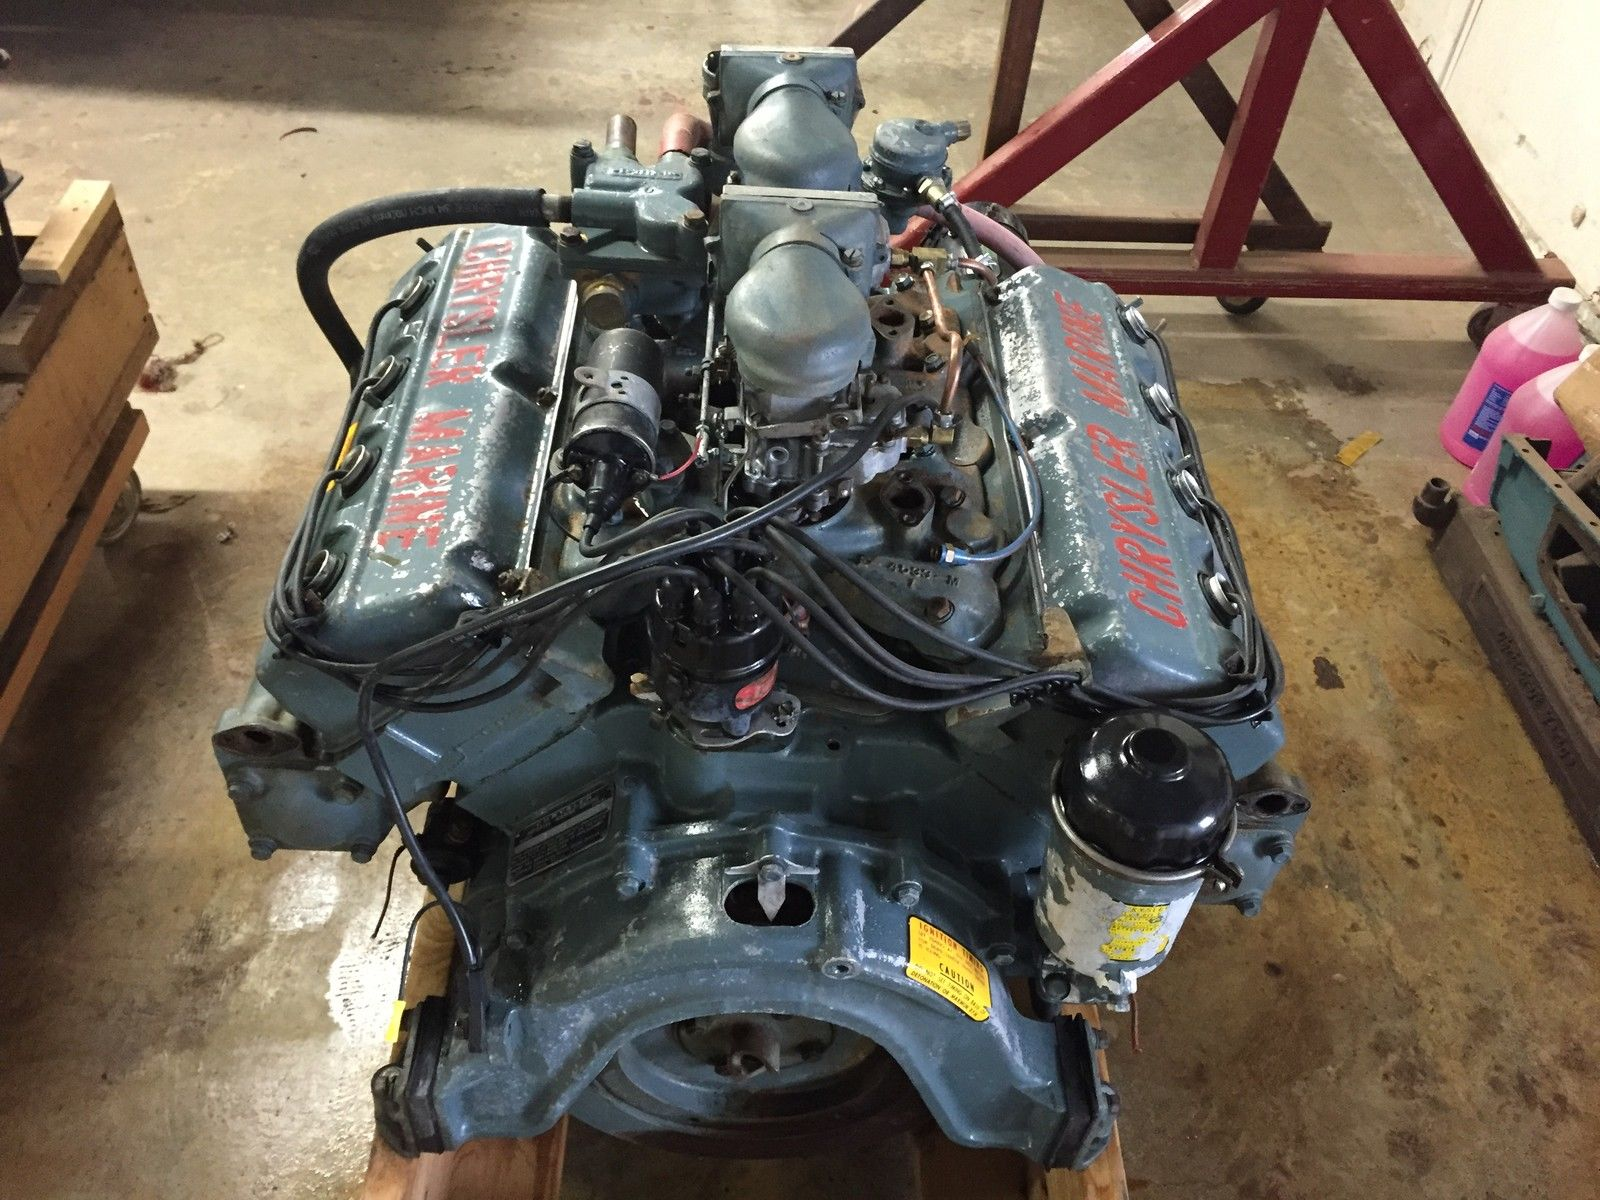 331 Hemi Marine Engine 200 Hp 1956 For Sale For 4 000